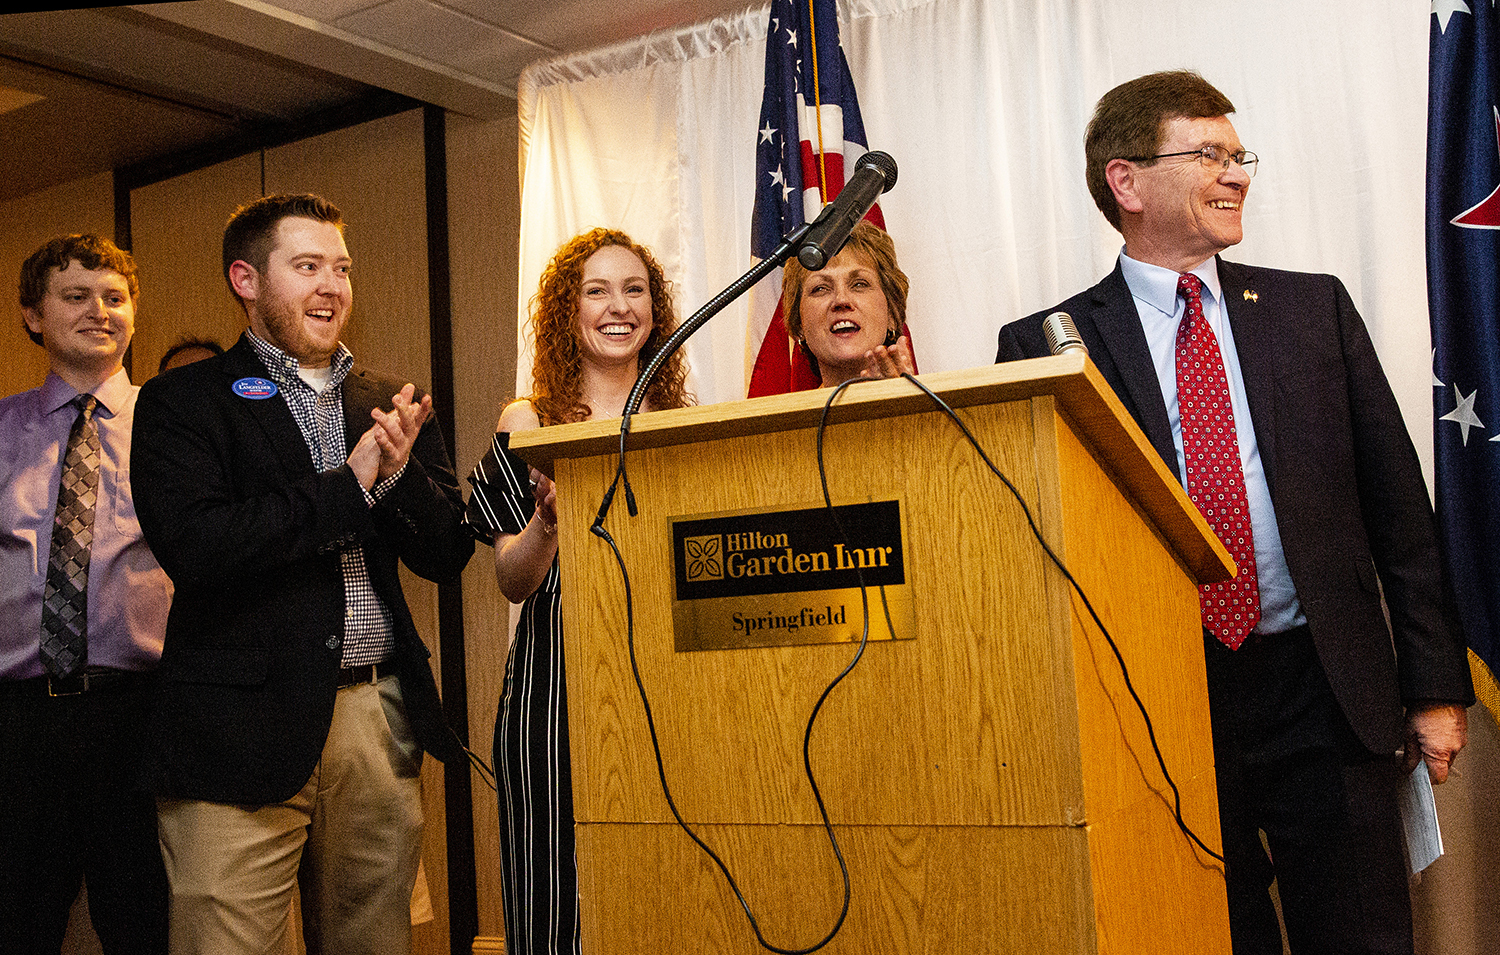 Jim Langfelder thanks those who helped him win reelection to a second term as mayor Tuesday, April 2, 2019 at the Hilton Garden Inn in Springfield, Ill. His family, Ryan, left, Justin, Lauren and his wife Billie, celebrated with him. [Rich Saal/The State Journal-Register]